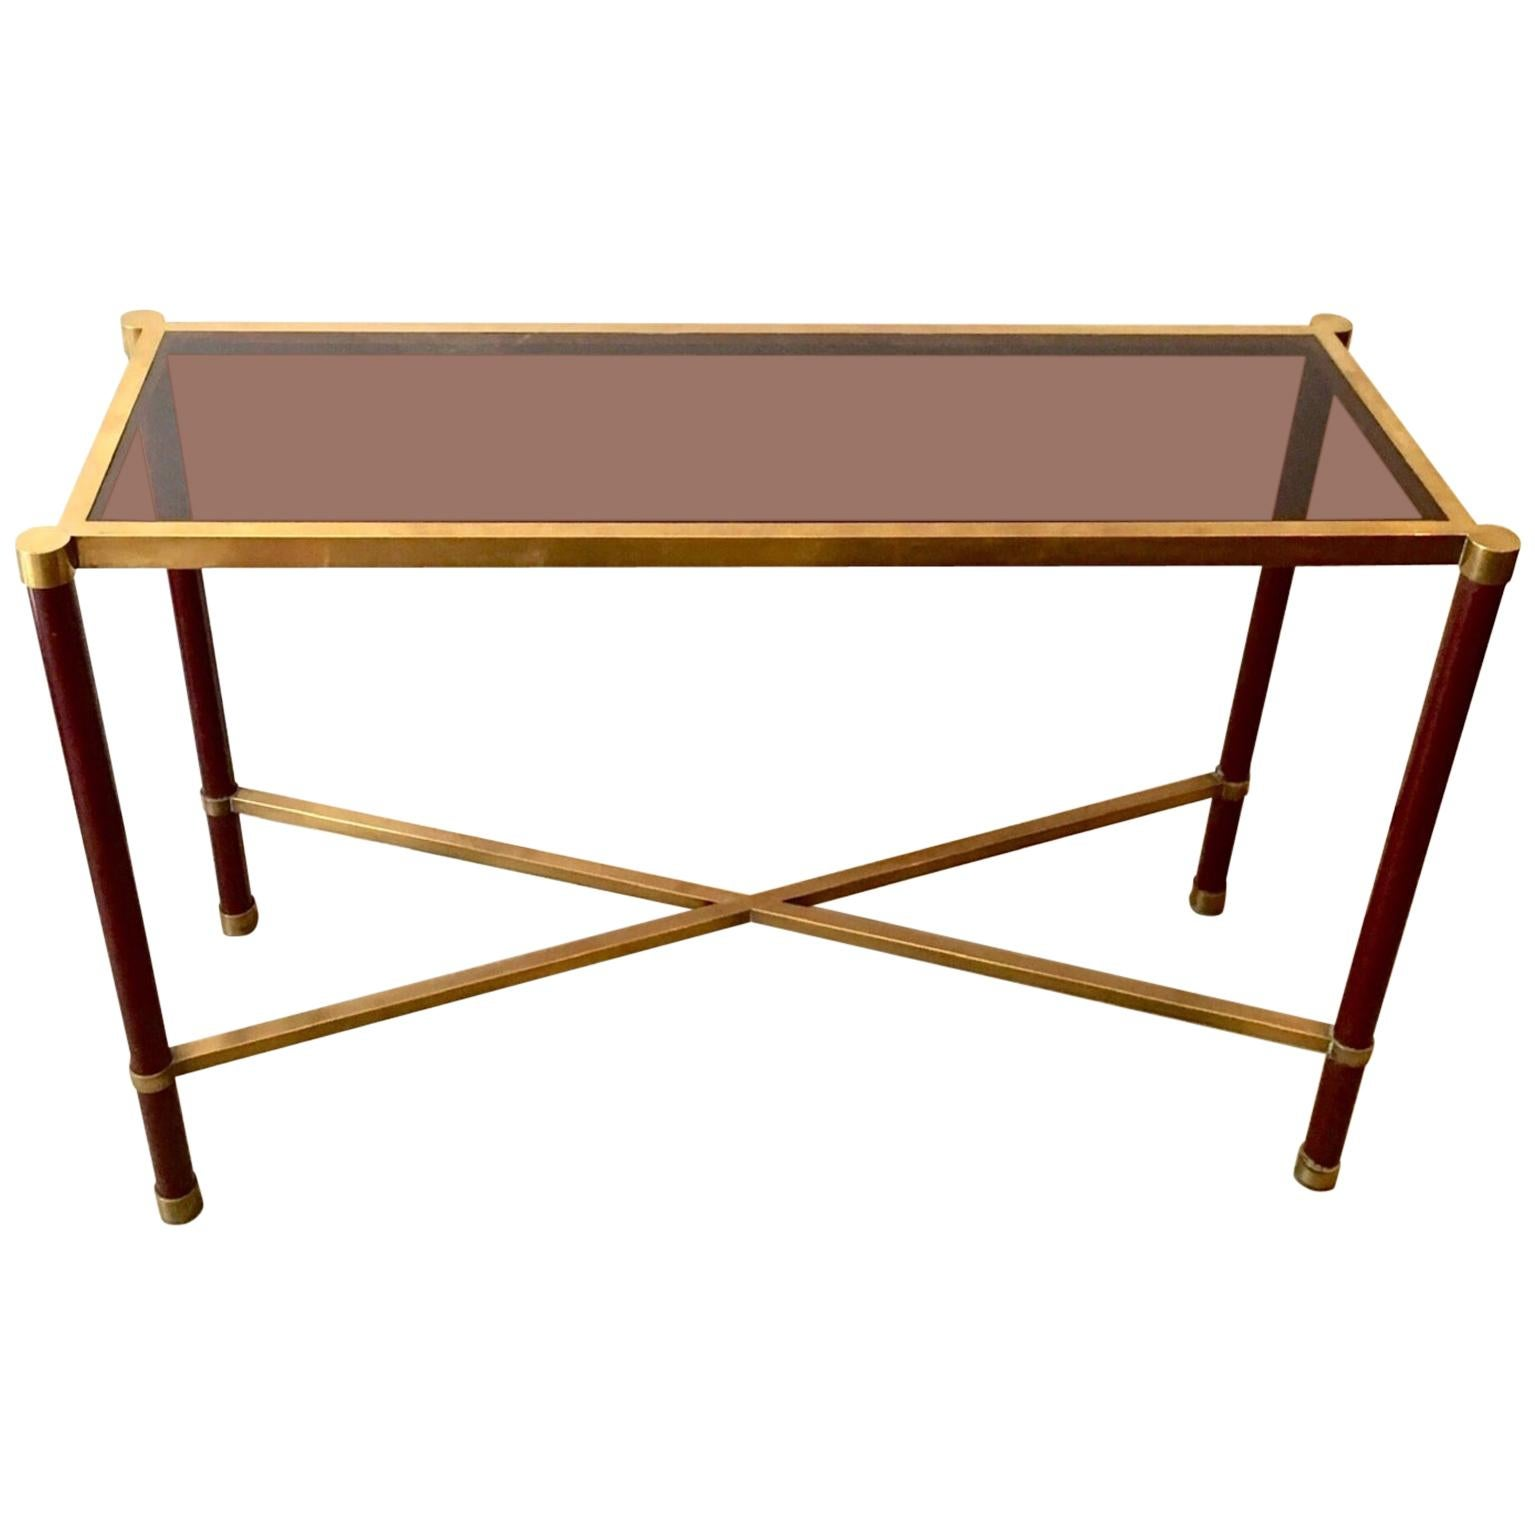 1960 French Guy Lefevre Metal Lacquered Console